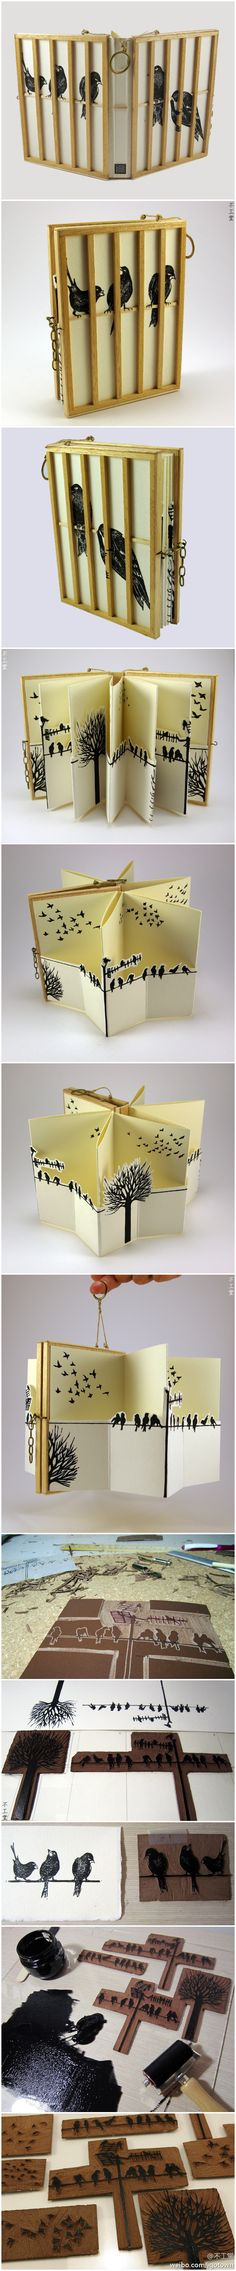 Artist book - Pop up book - Crows.